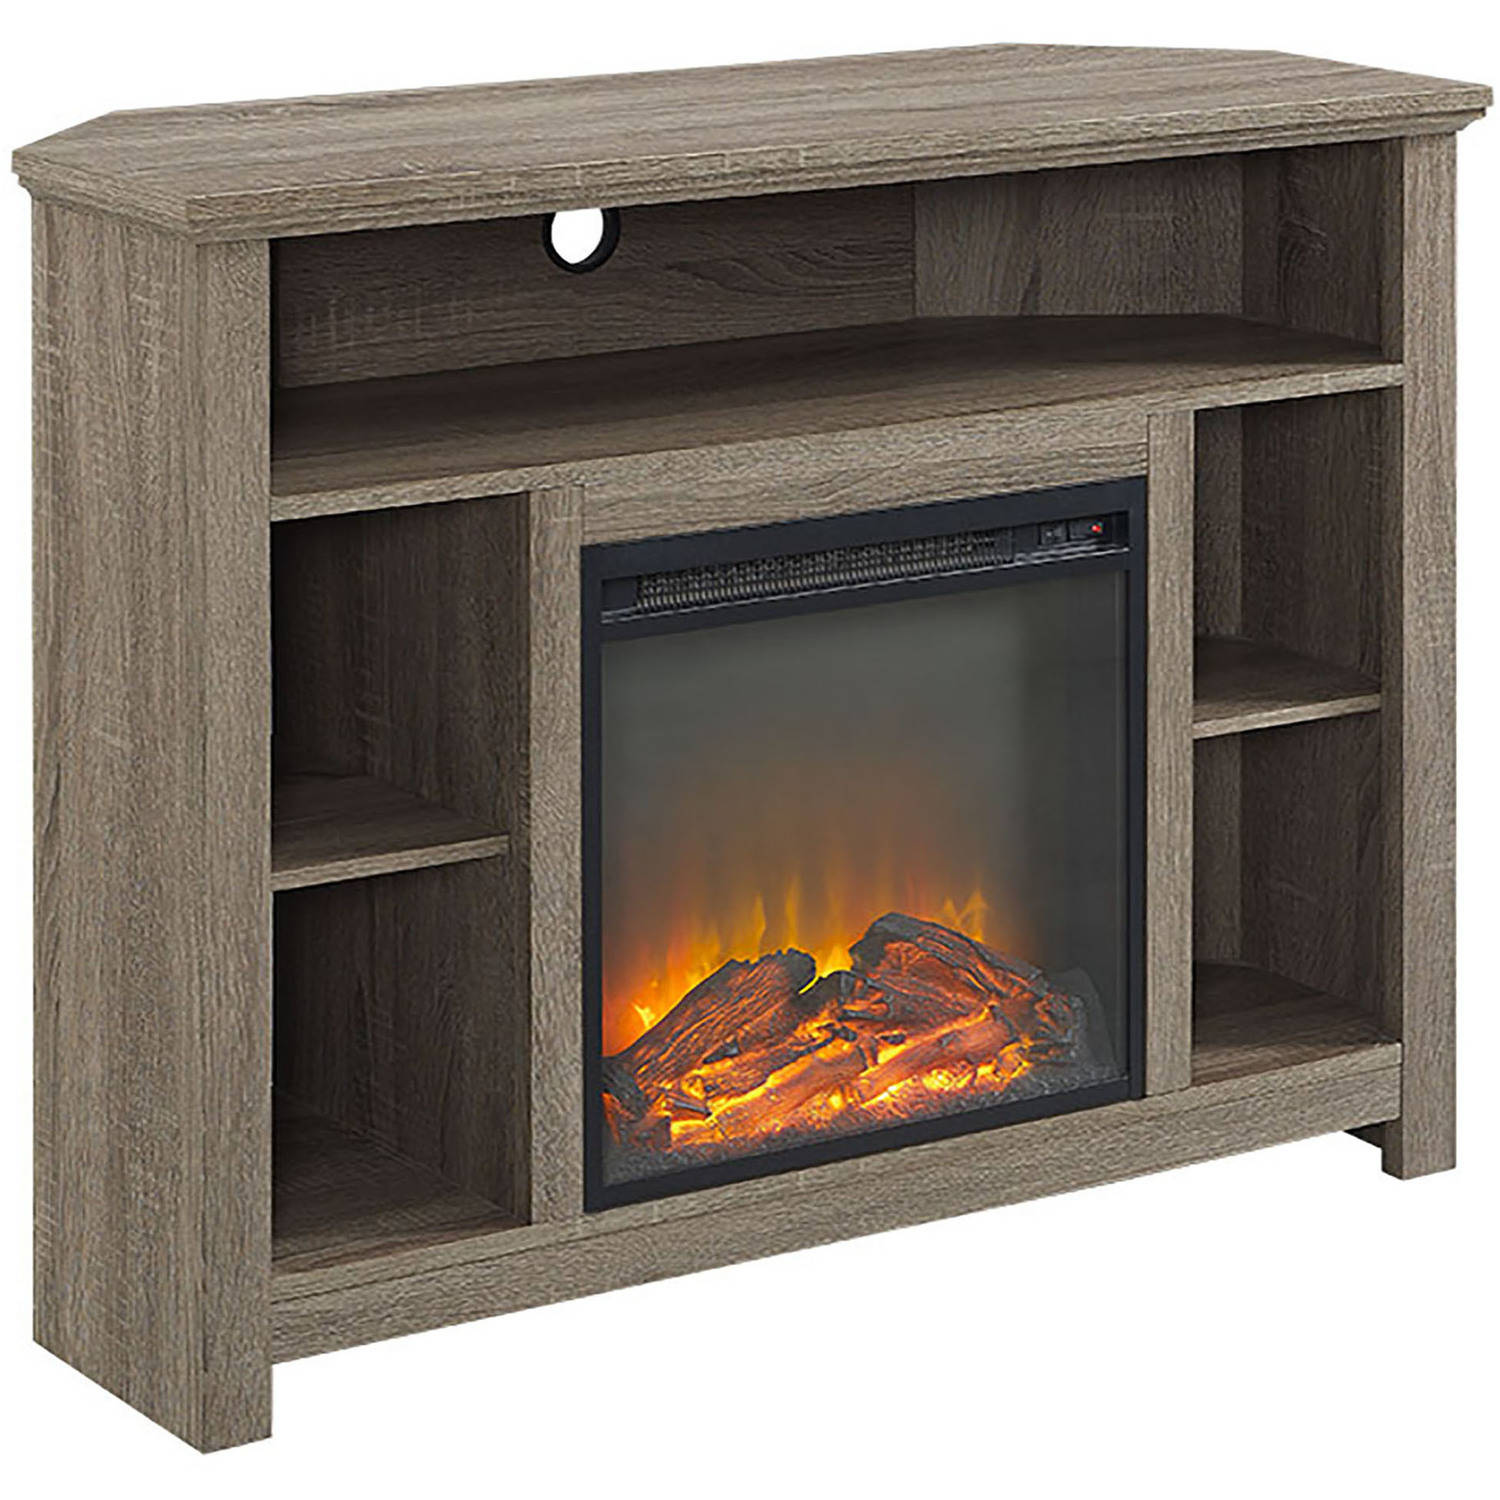 Driftwood Tv Stand With Fireplace Corner Mantel Electronic Space